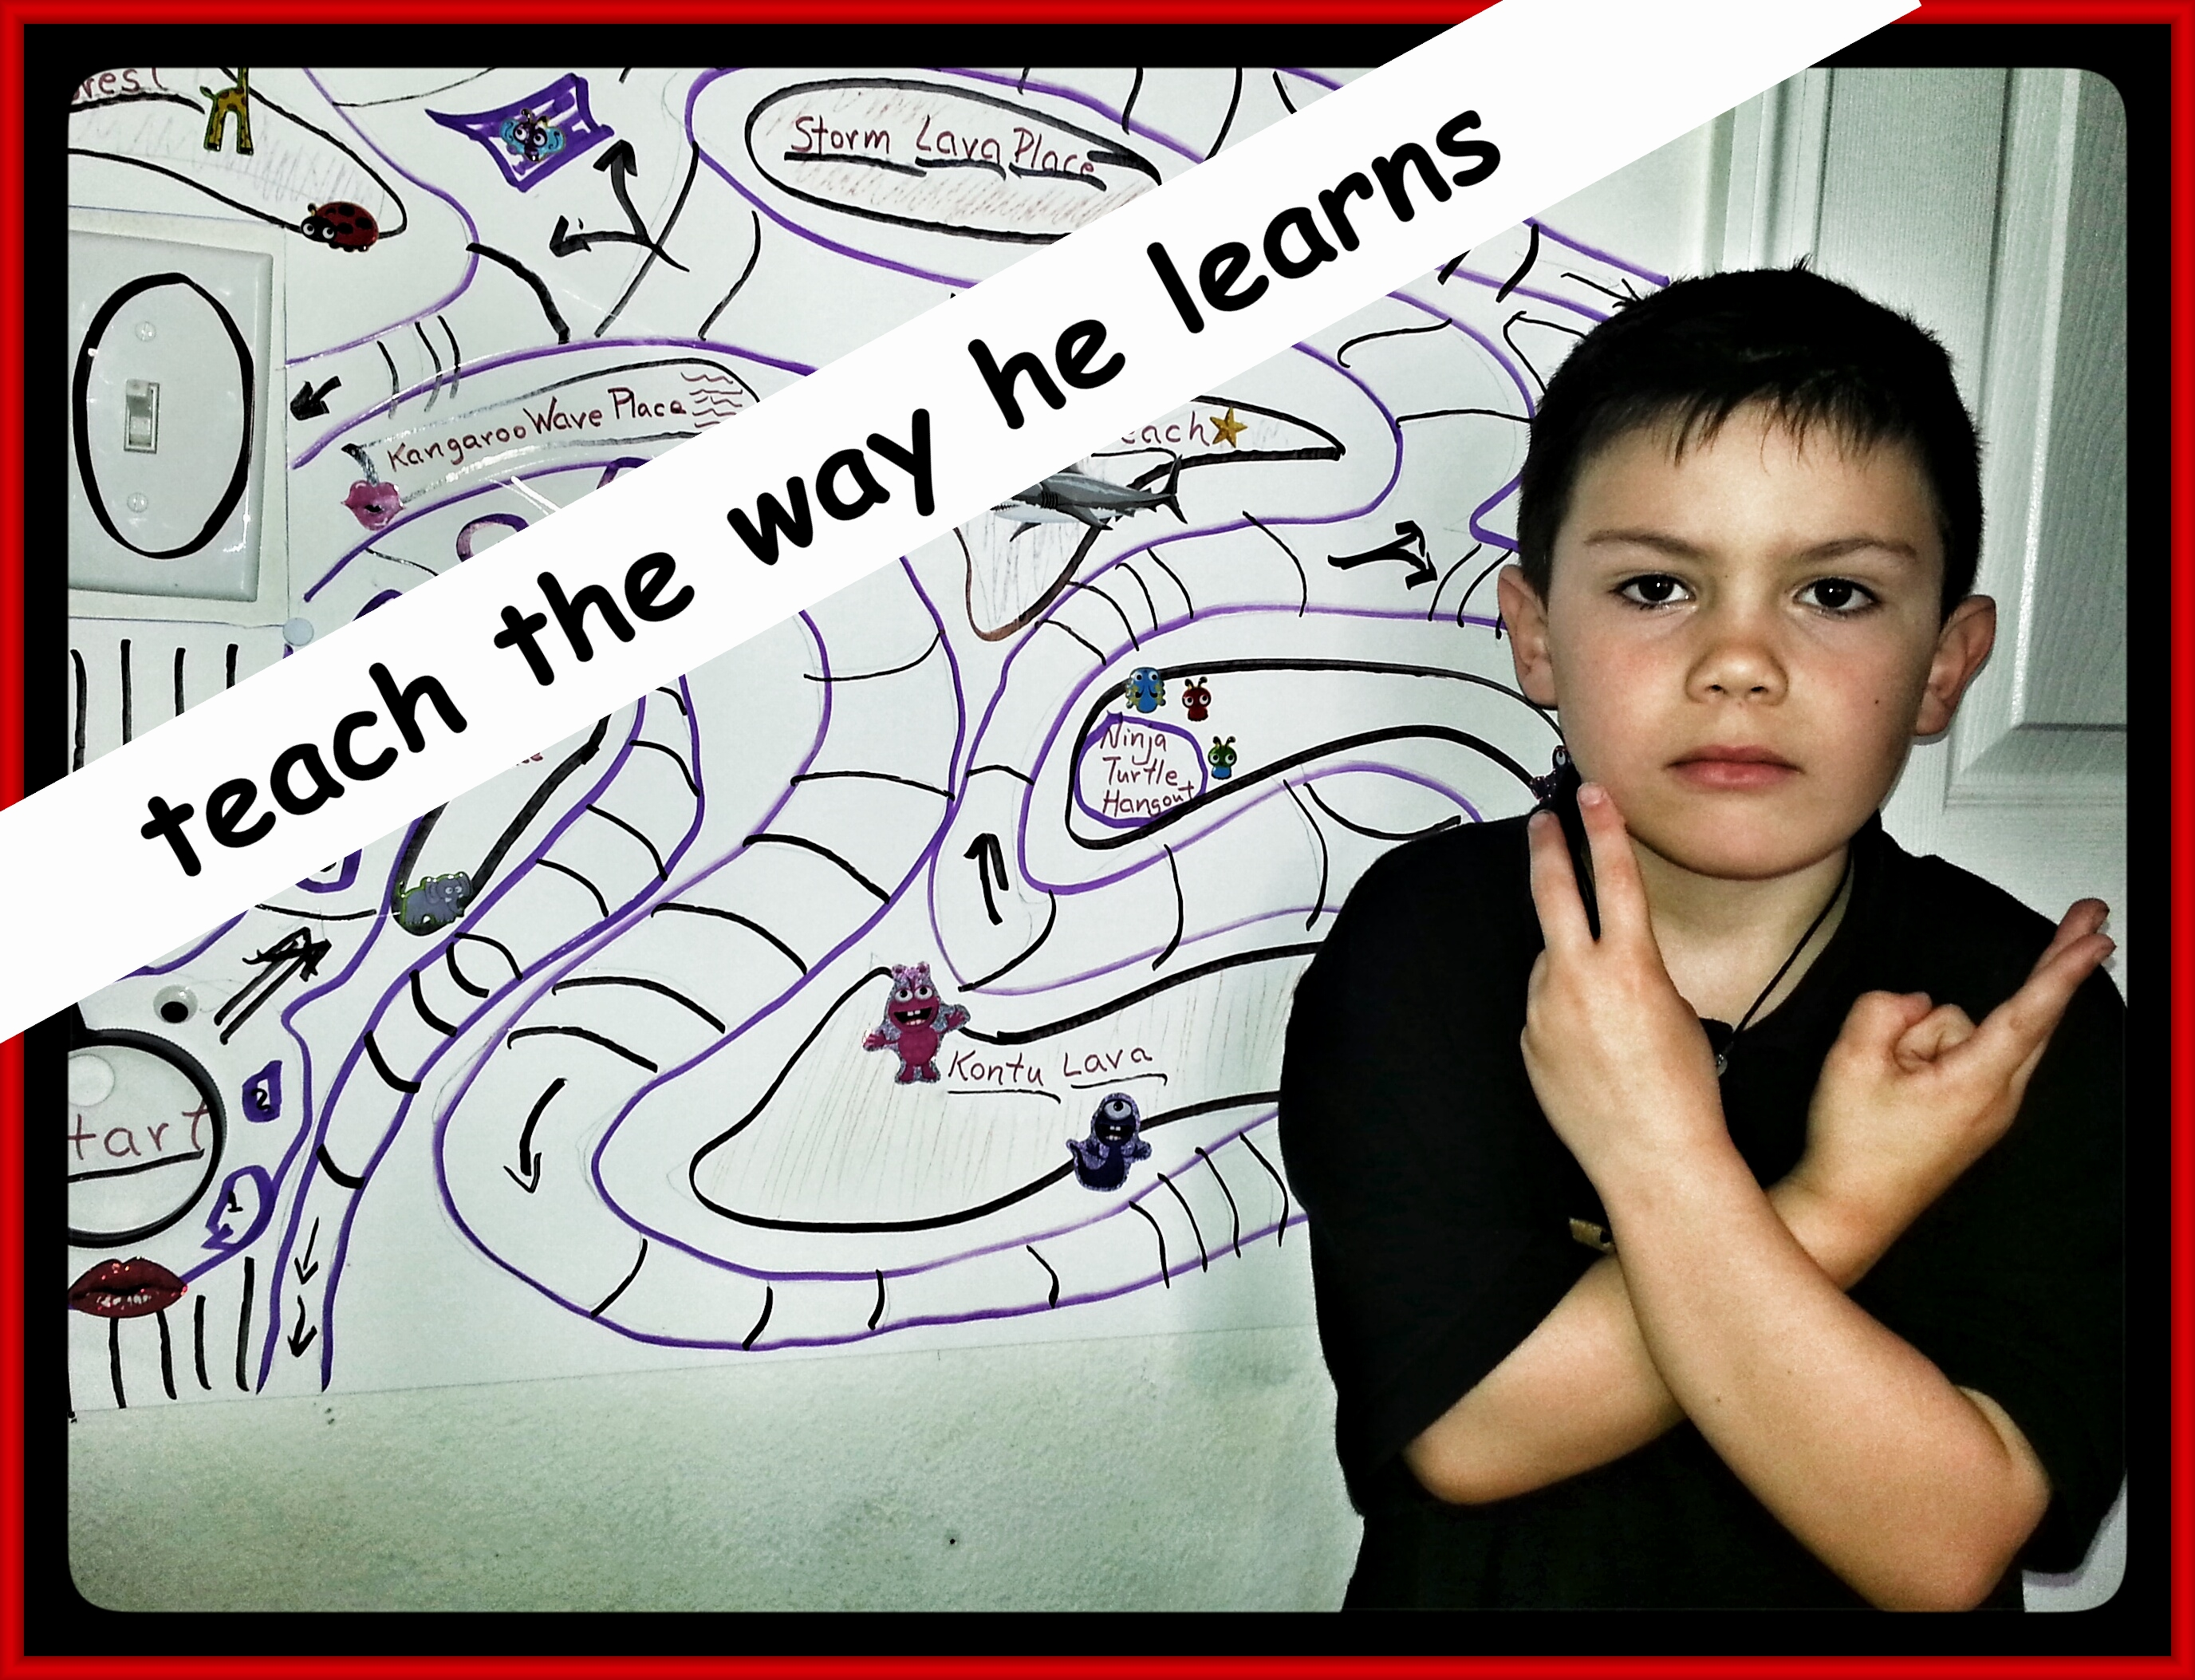 Teach the way he learns - Daniel